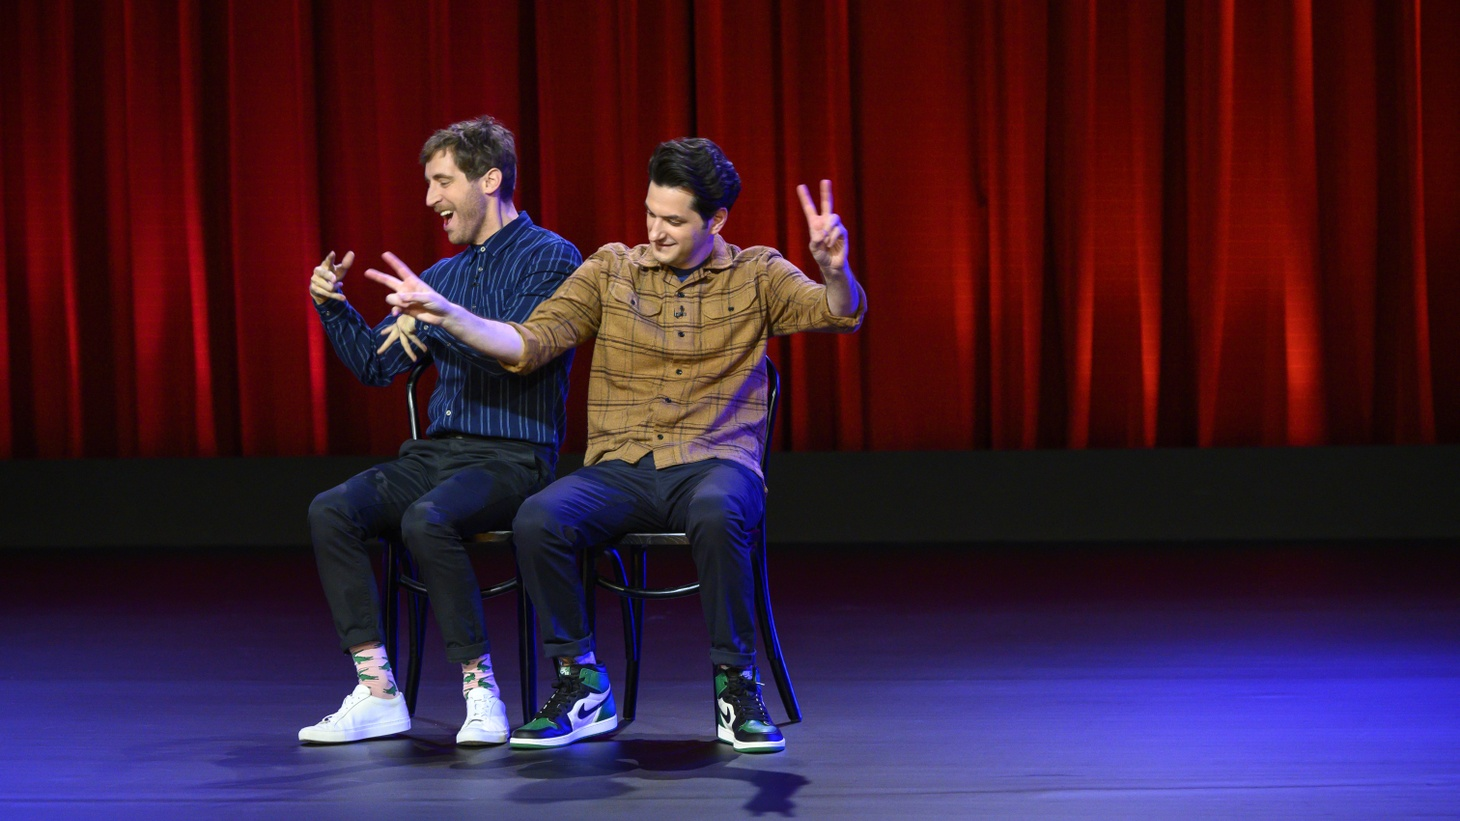 Thomas Middleditch and Ben Schwartz are out with a new improvised comedy special on Netflix.